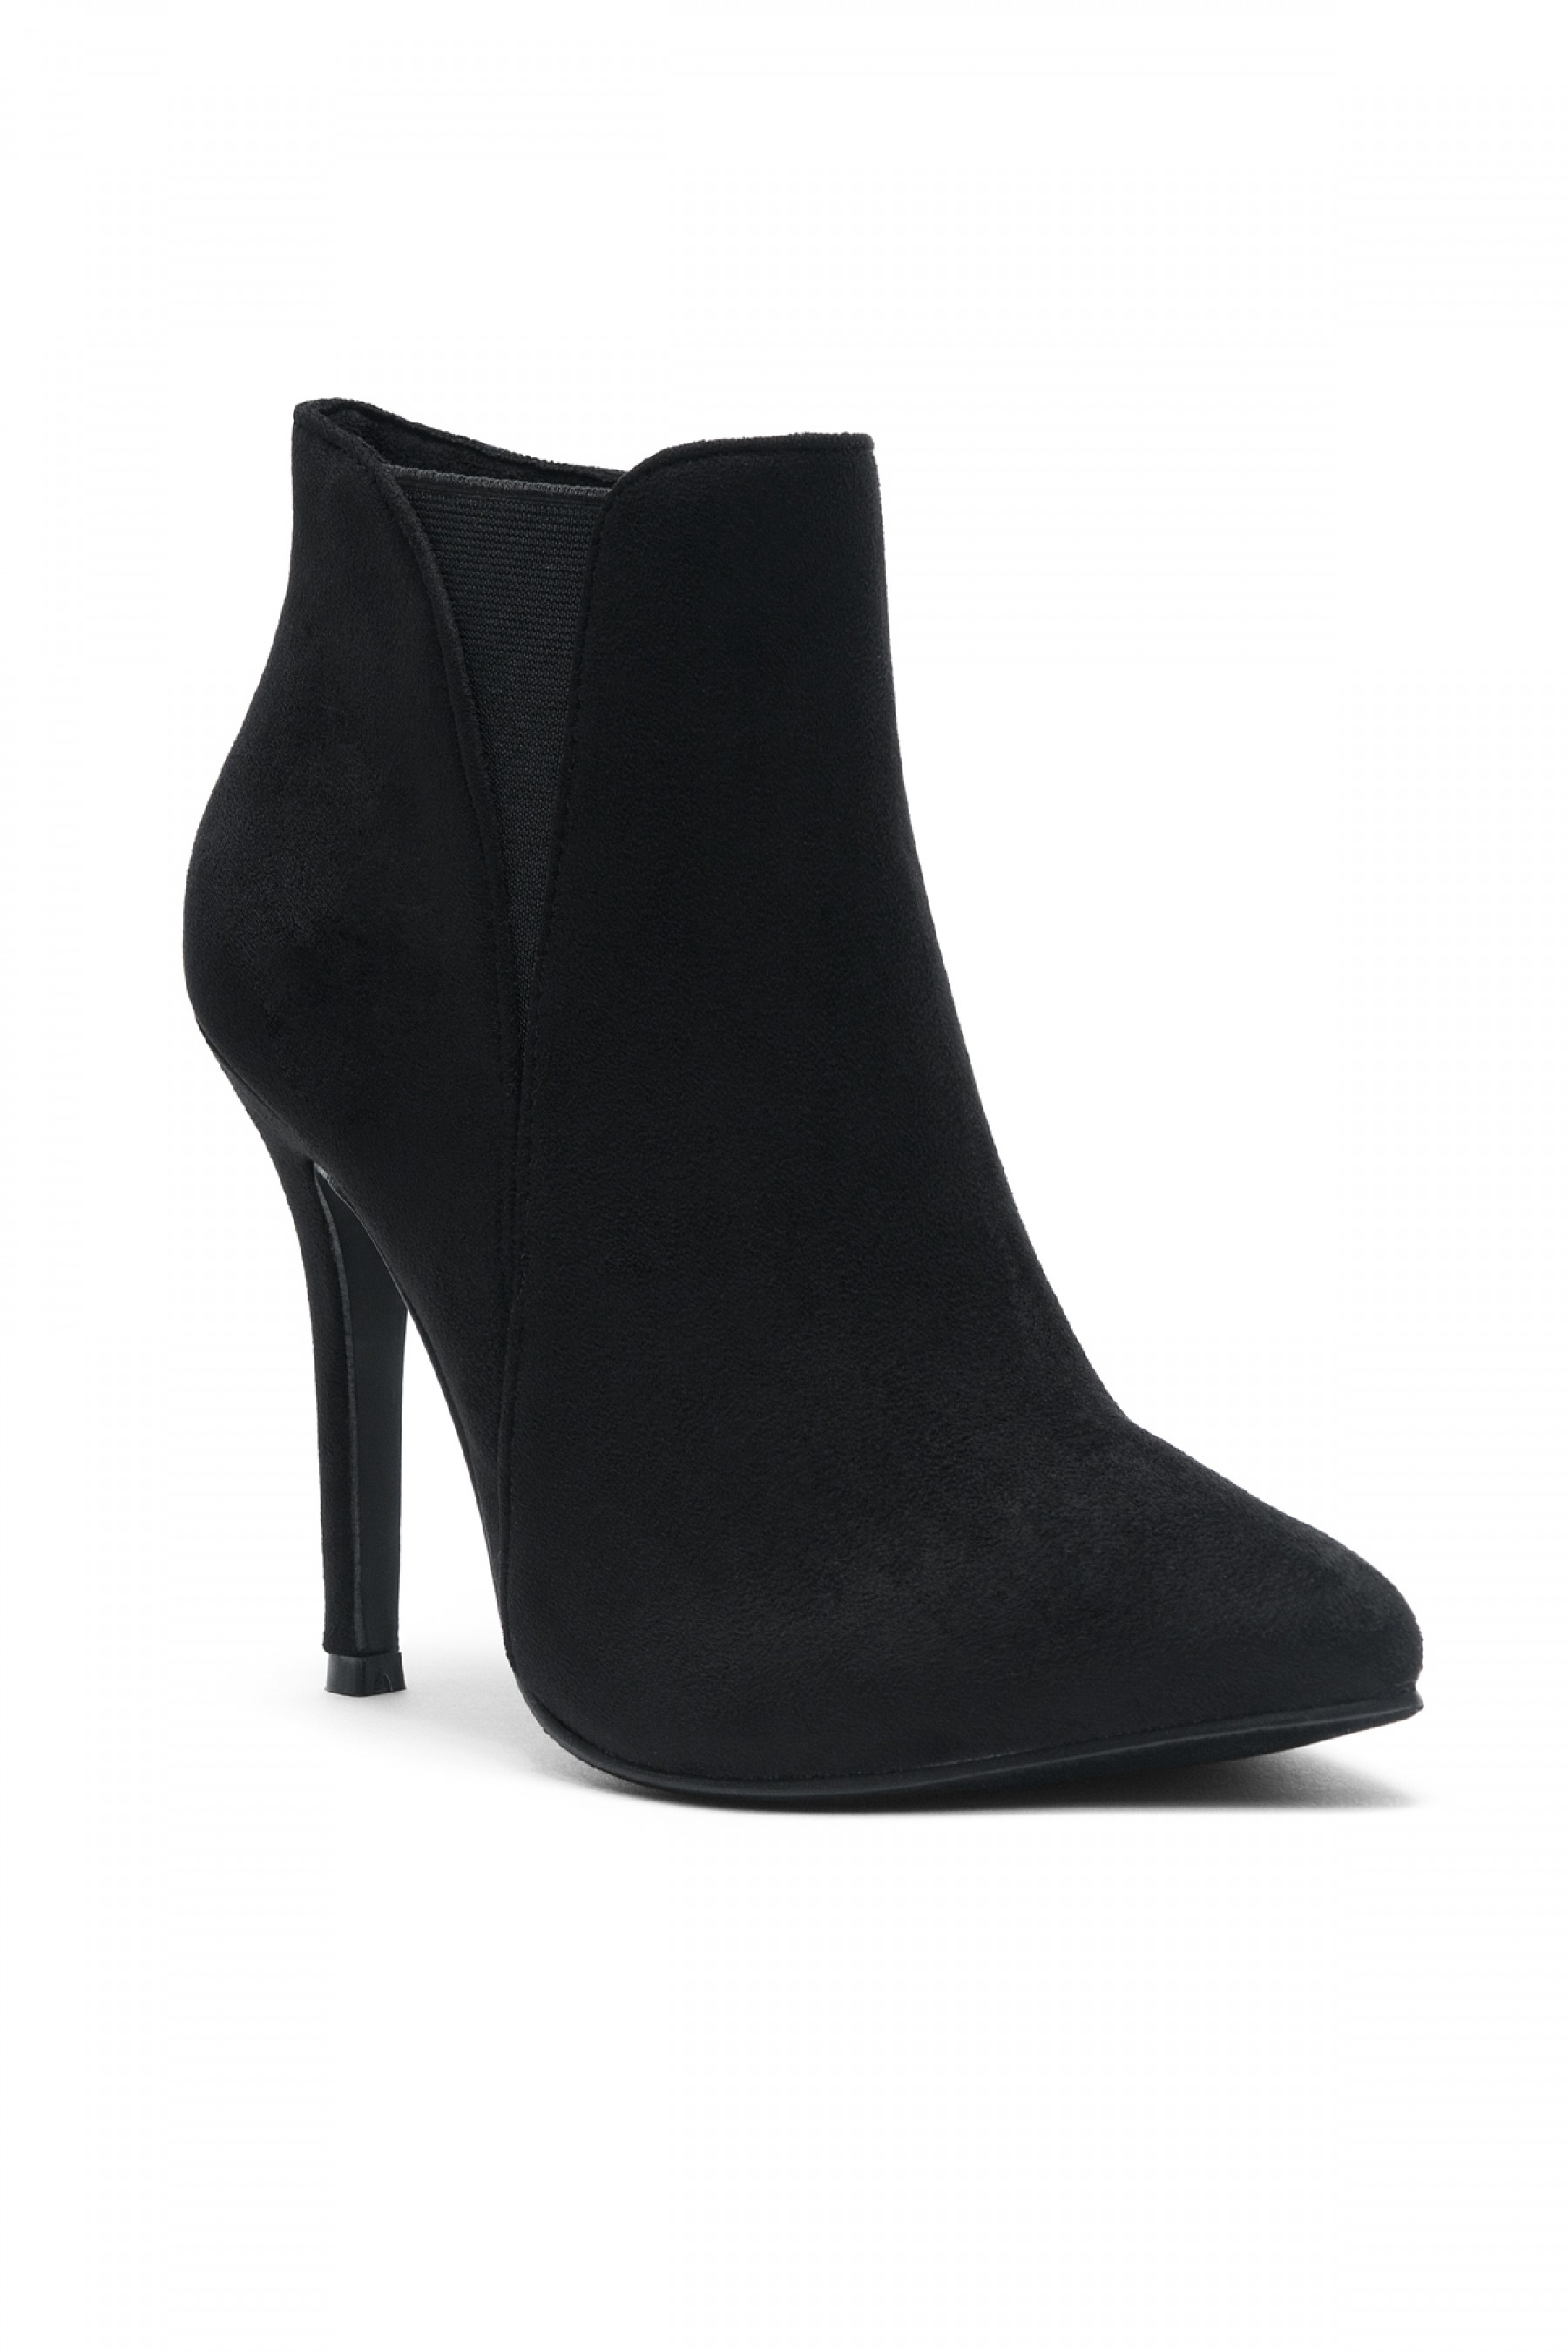 Women's Pointed Toe Suede Ankle Bootie